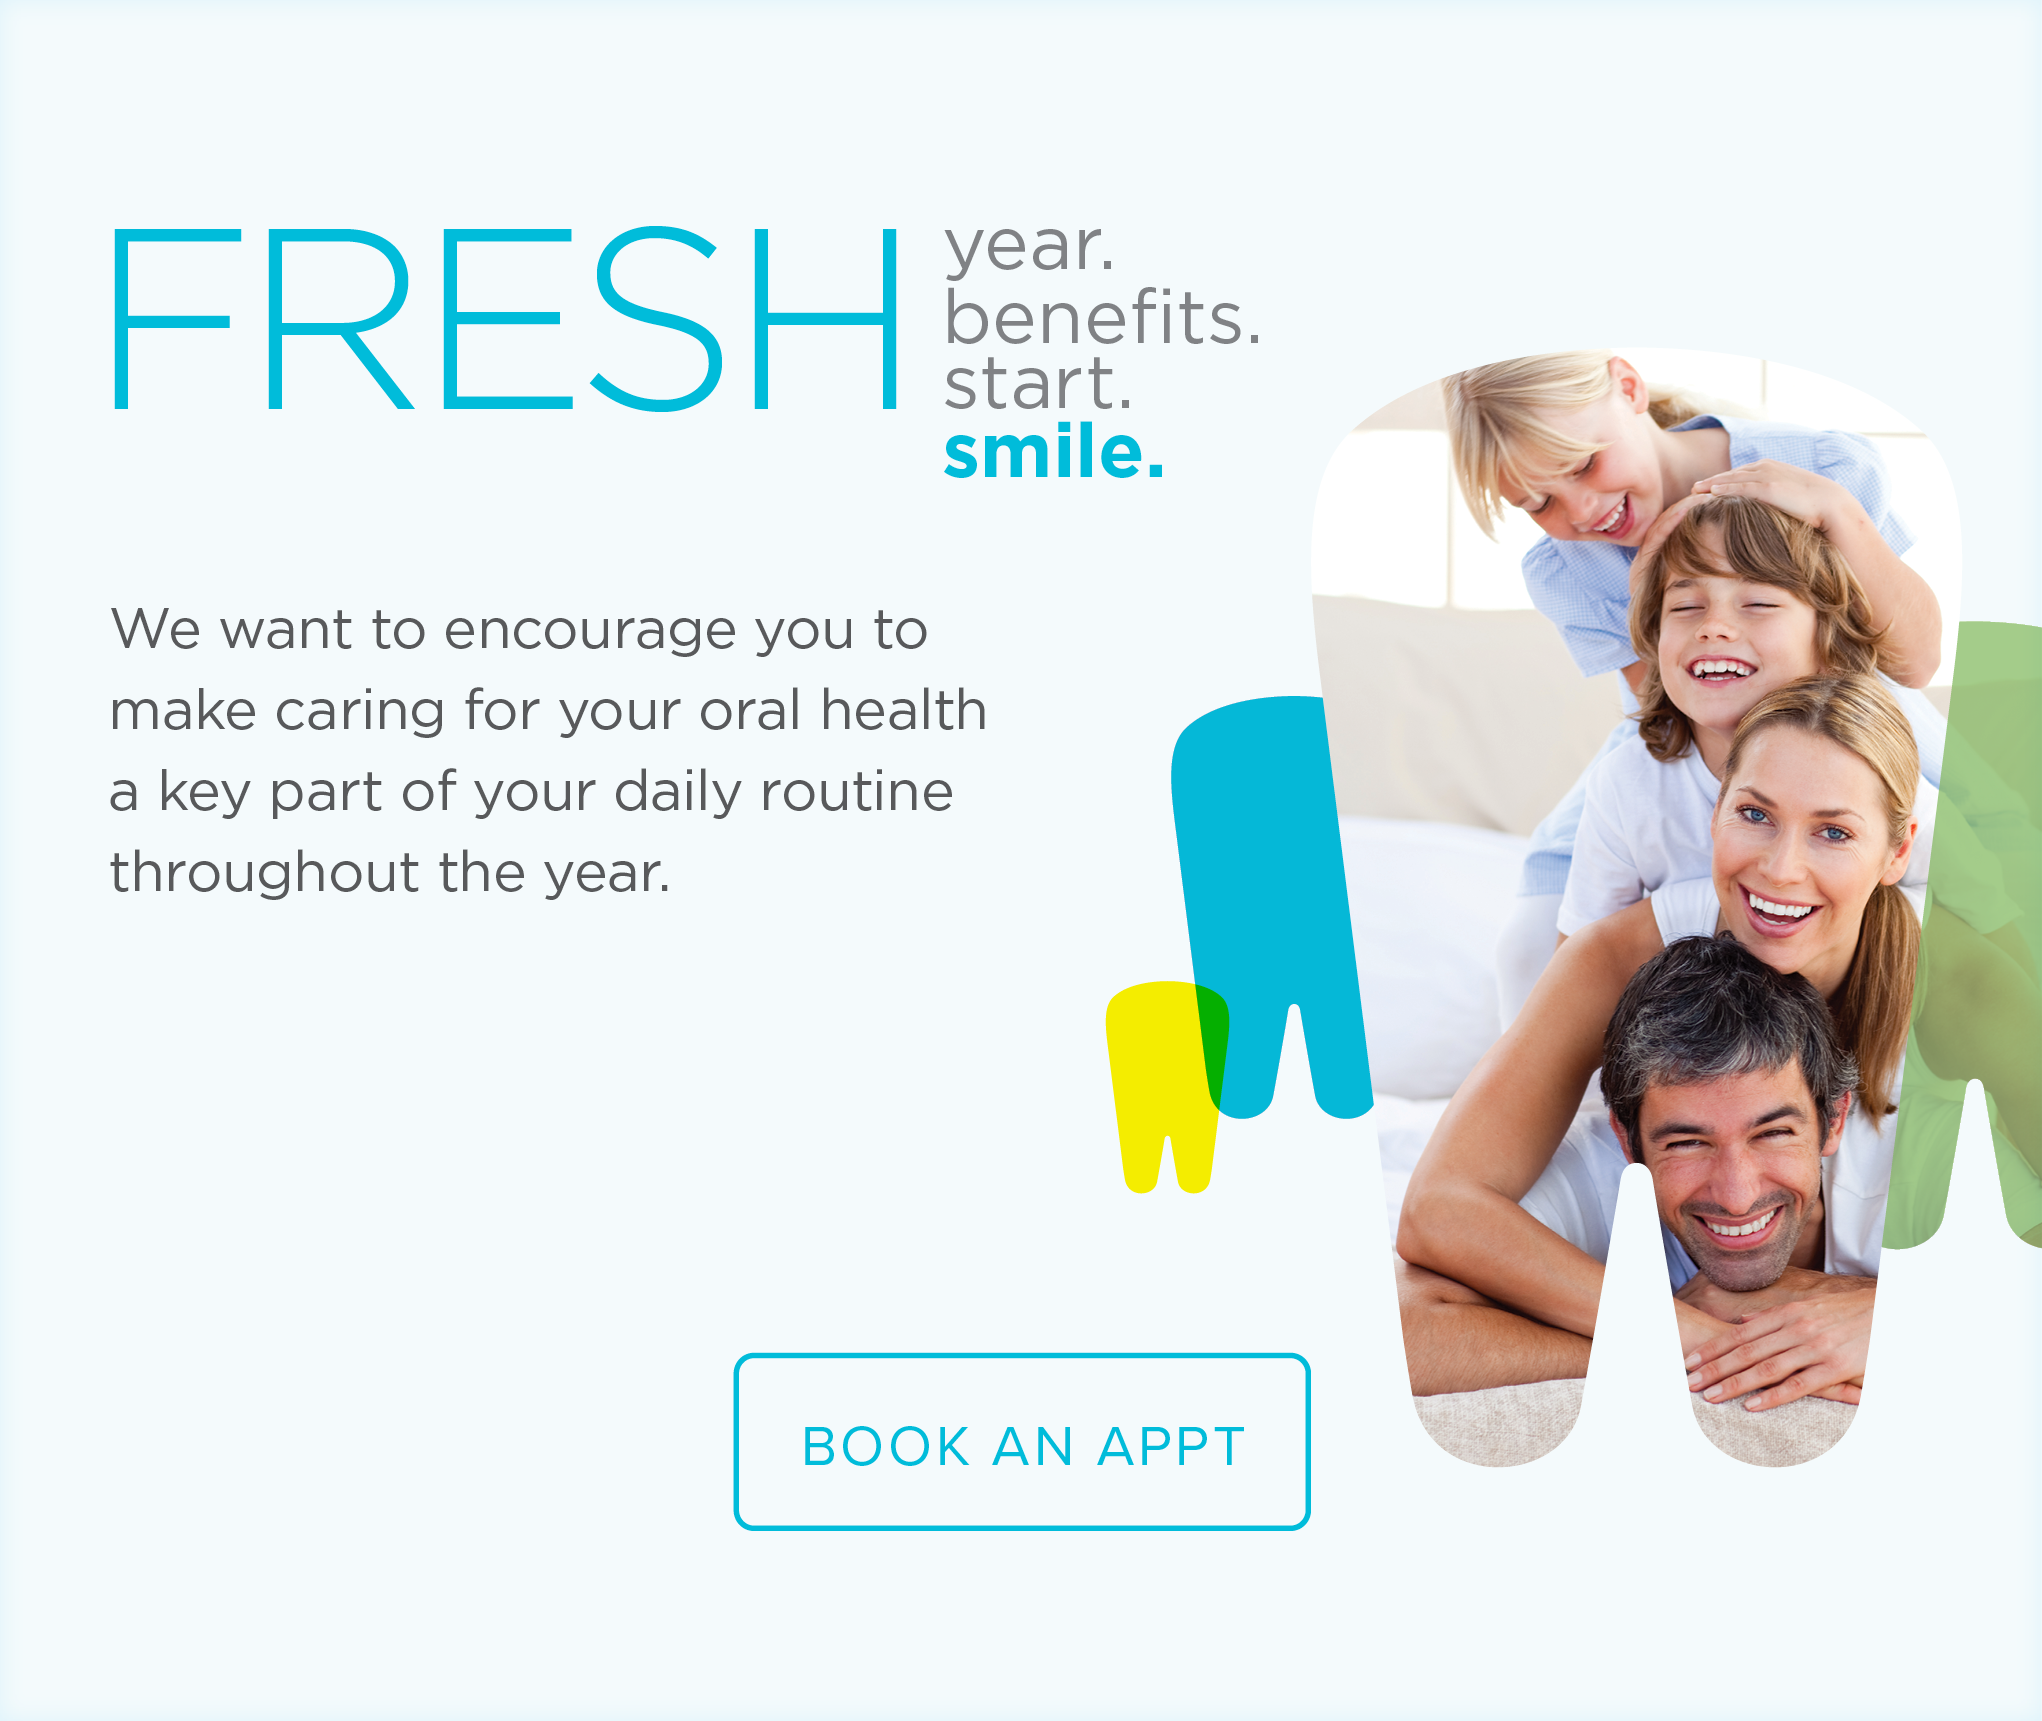 Deer Valley Dental Group - Make the Most of Your Benefits